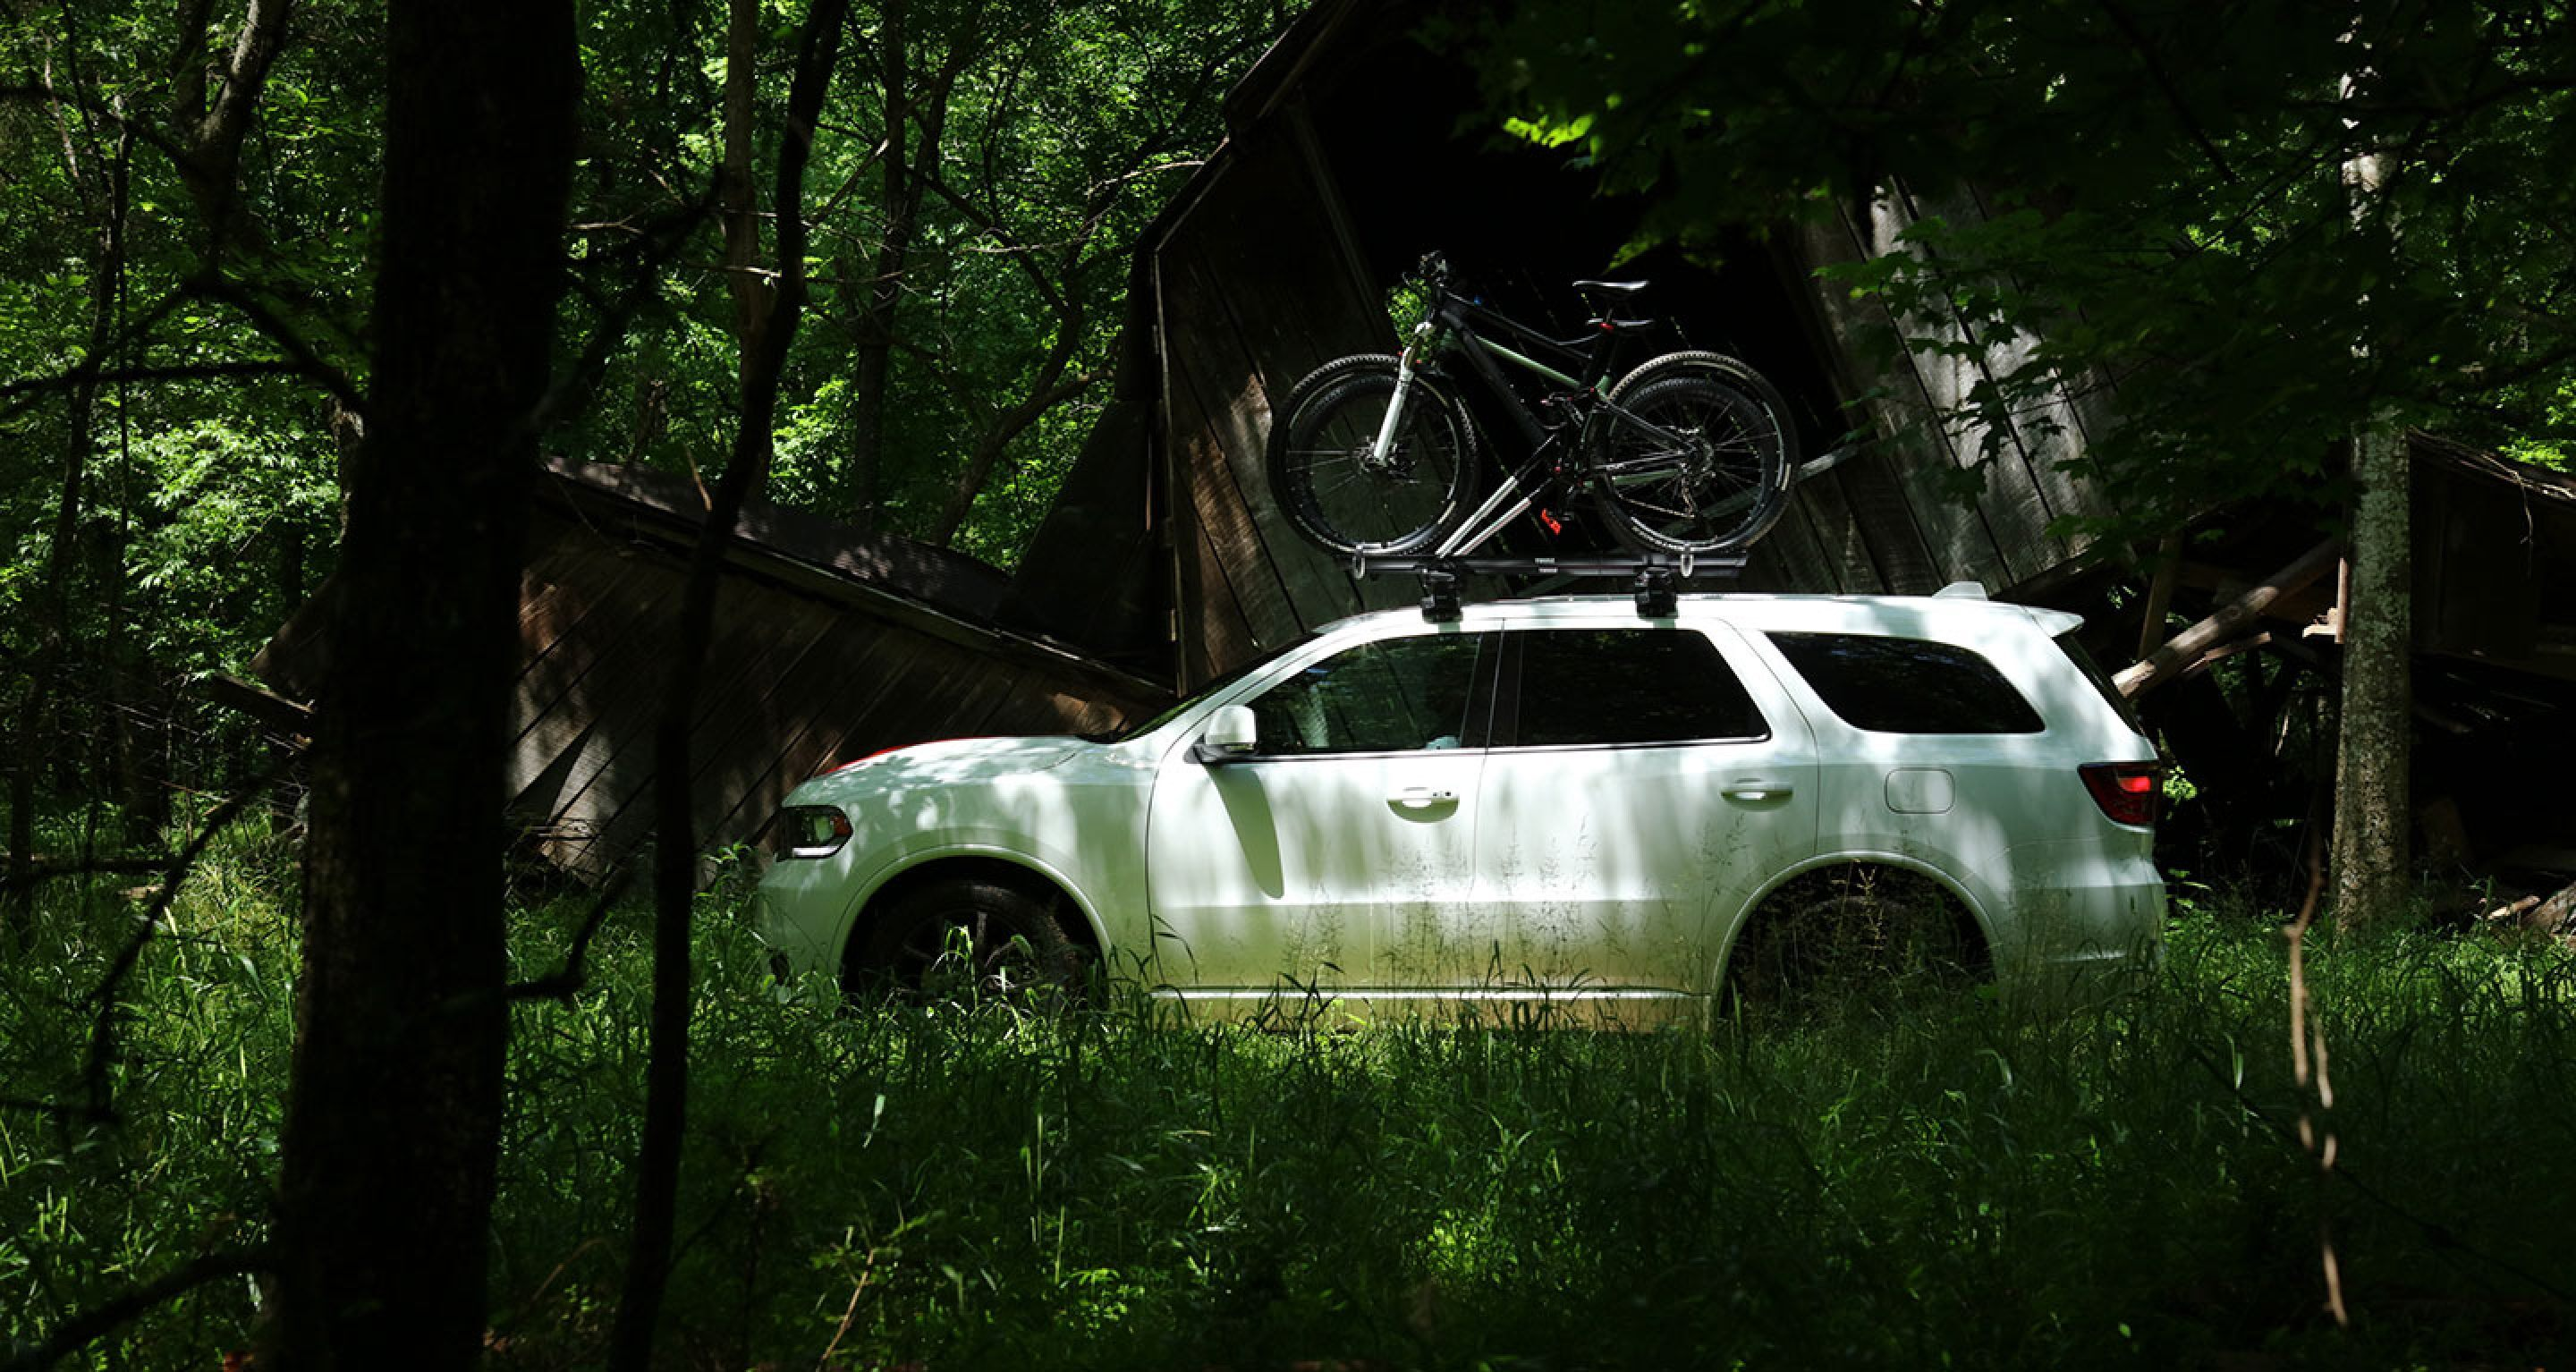 white 2019 dodge durango parked in the woods with a bike on top